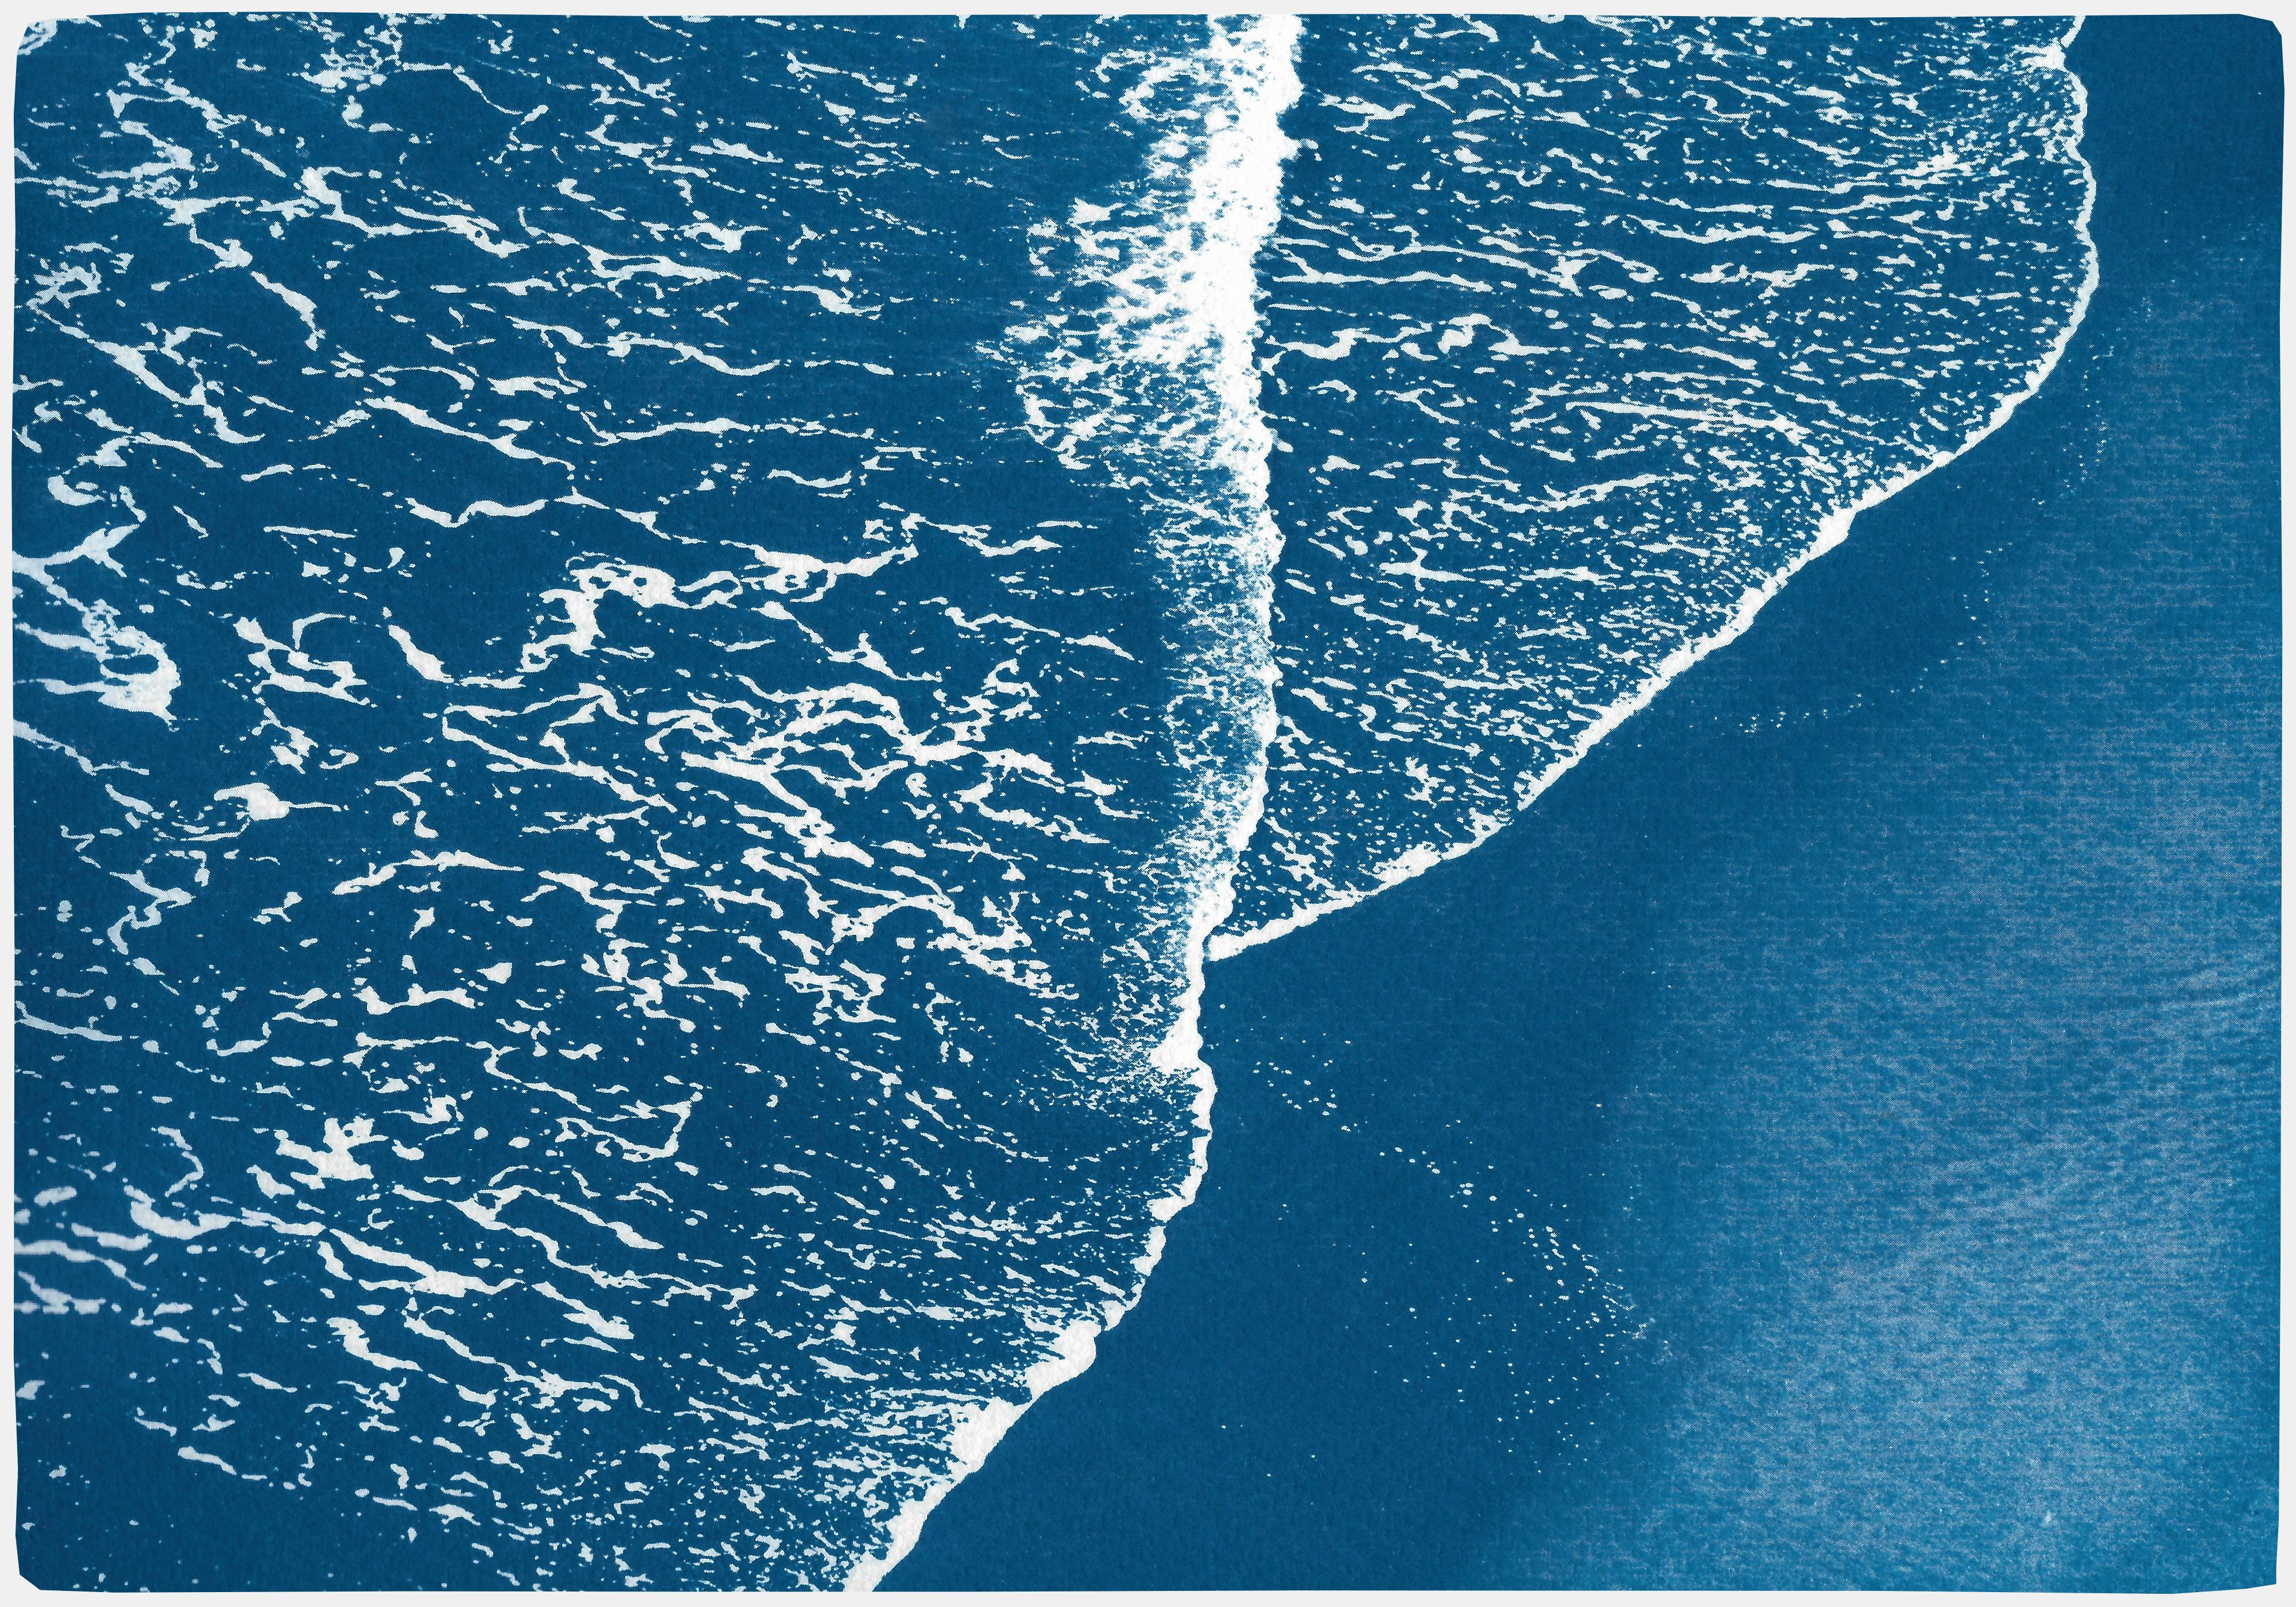 Pacific Foamy Shorelines, Original Cyanotype on Paper, Exquisite Blue and White